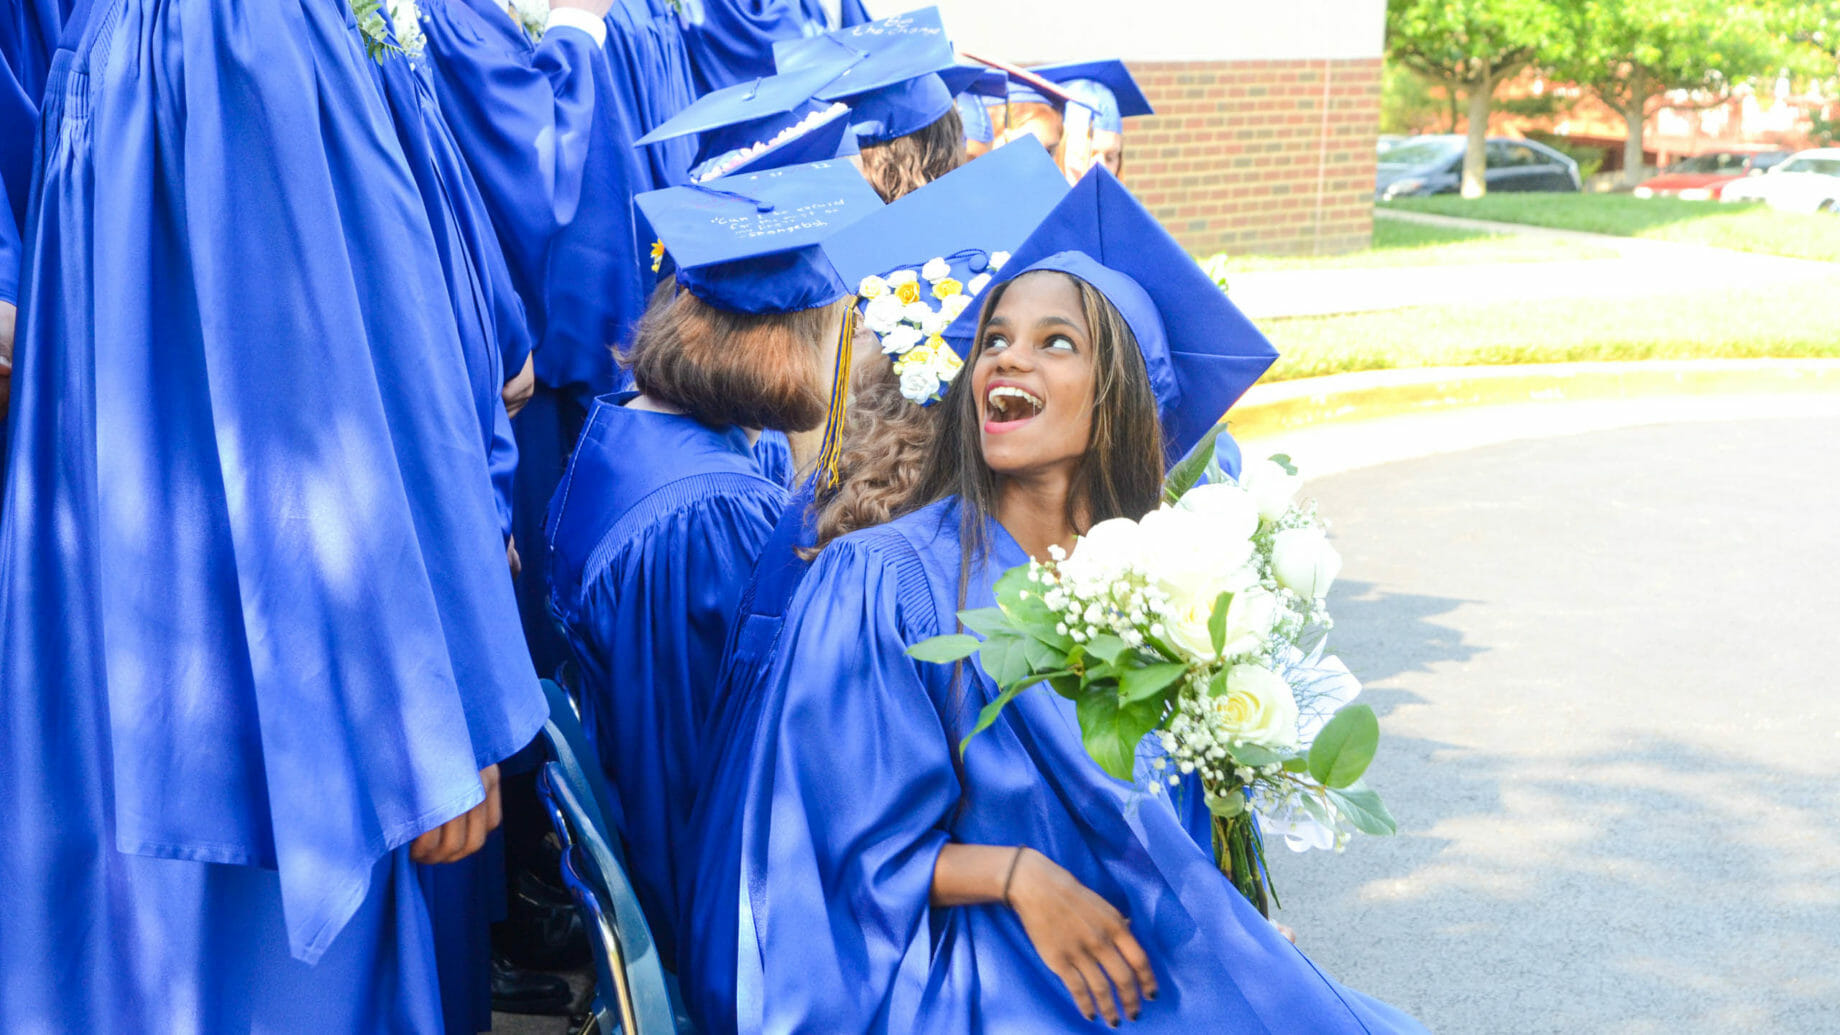 Graduates Excited for Their Accomplishment